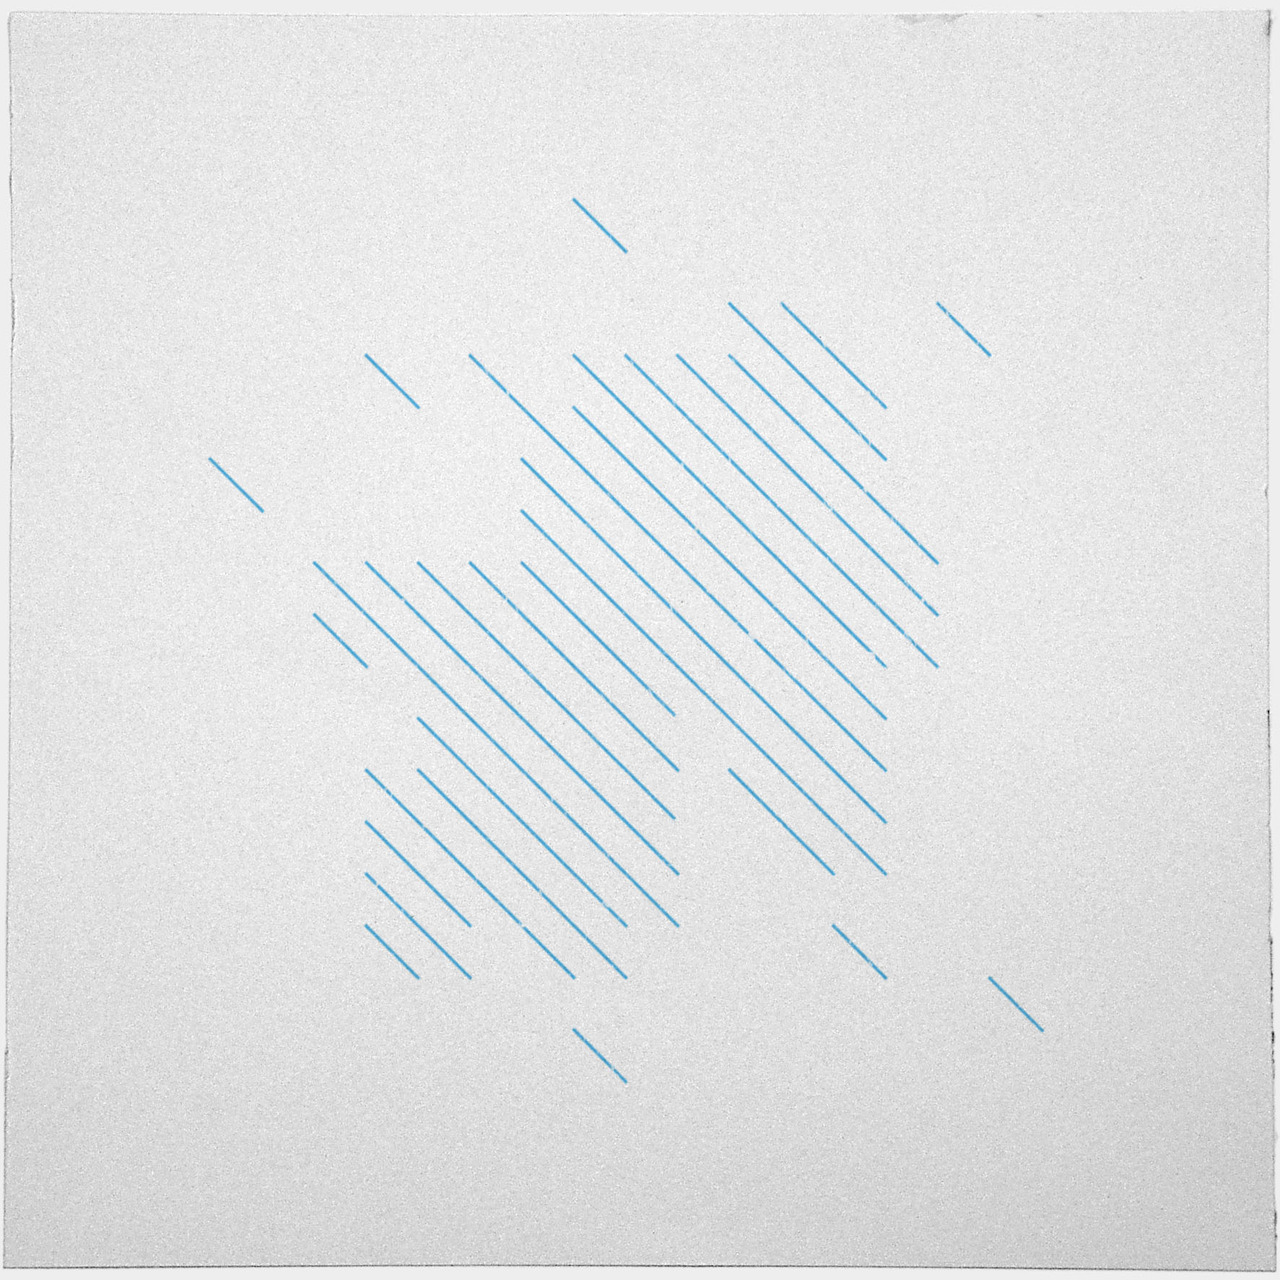 geometrydaily:  #198 Summer rain – This is #194's sister piece, can you see how they relate? – A new minimal geometric composition each day